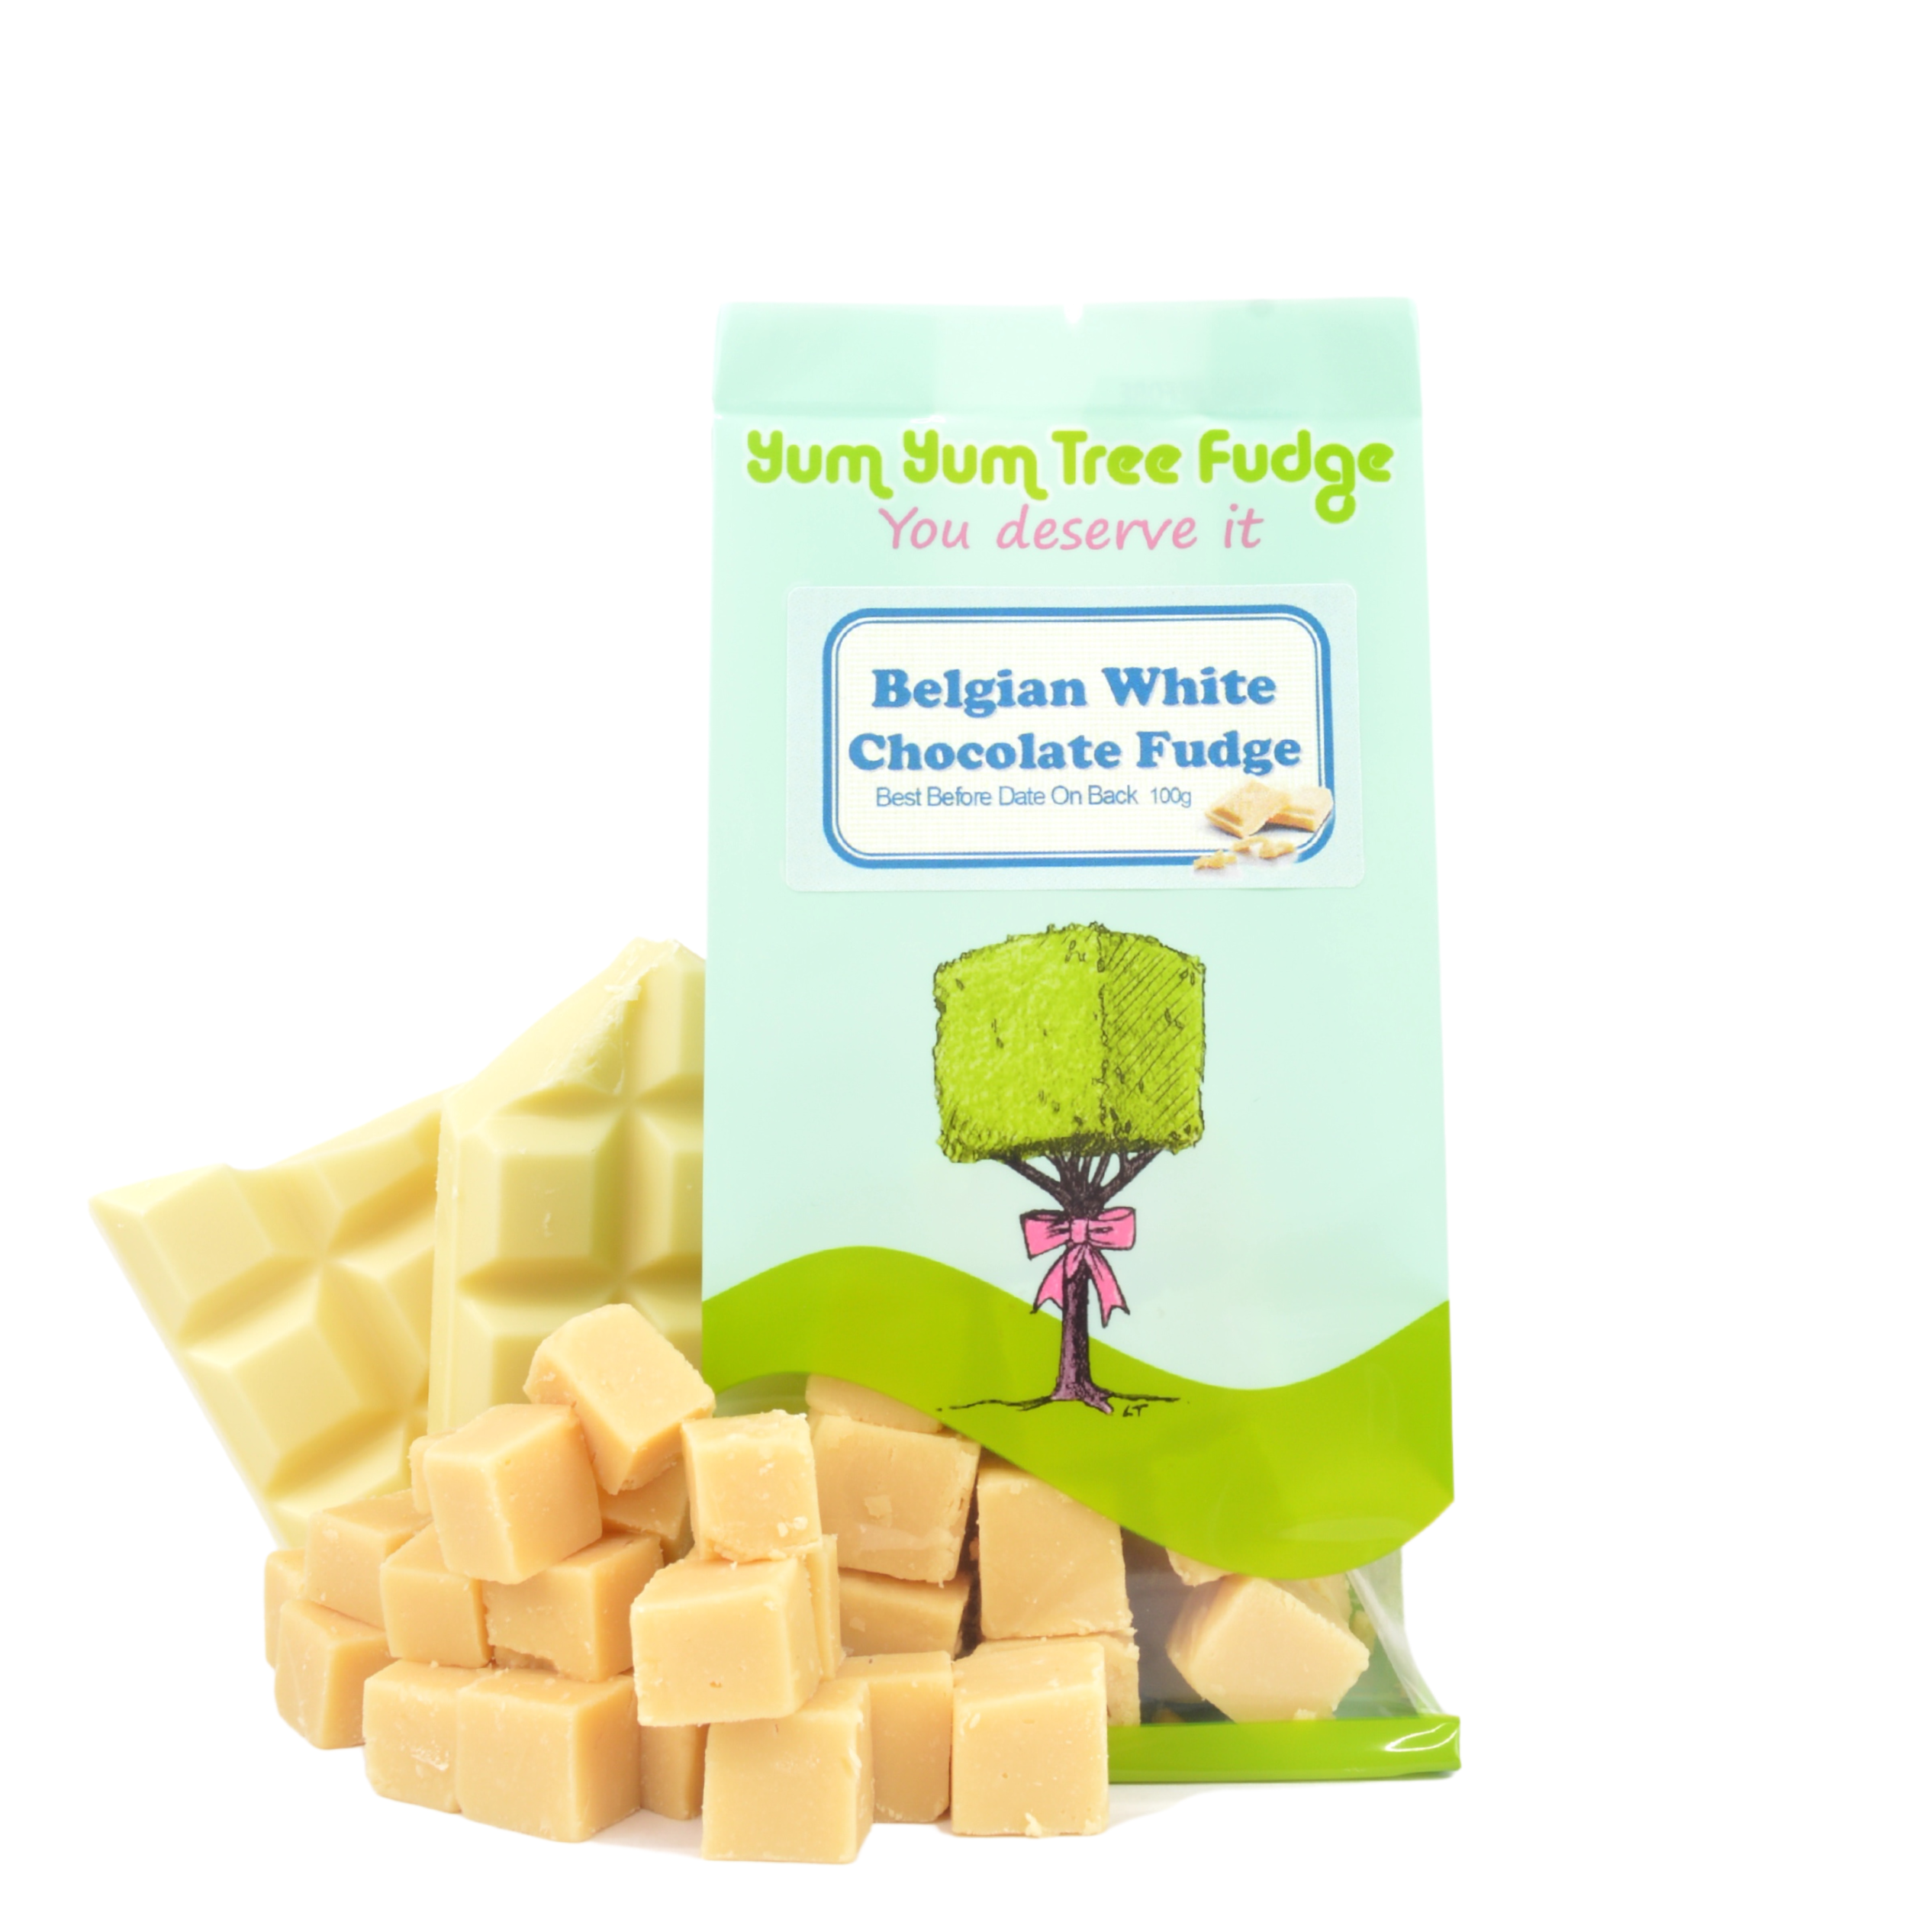 Belgian White Chocolate Fudge